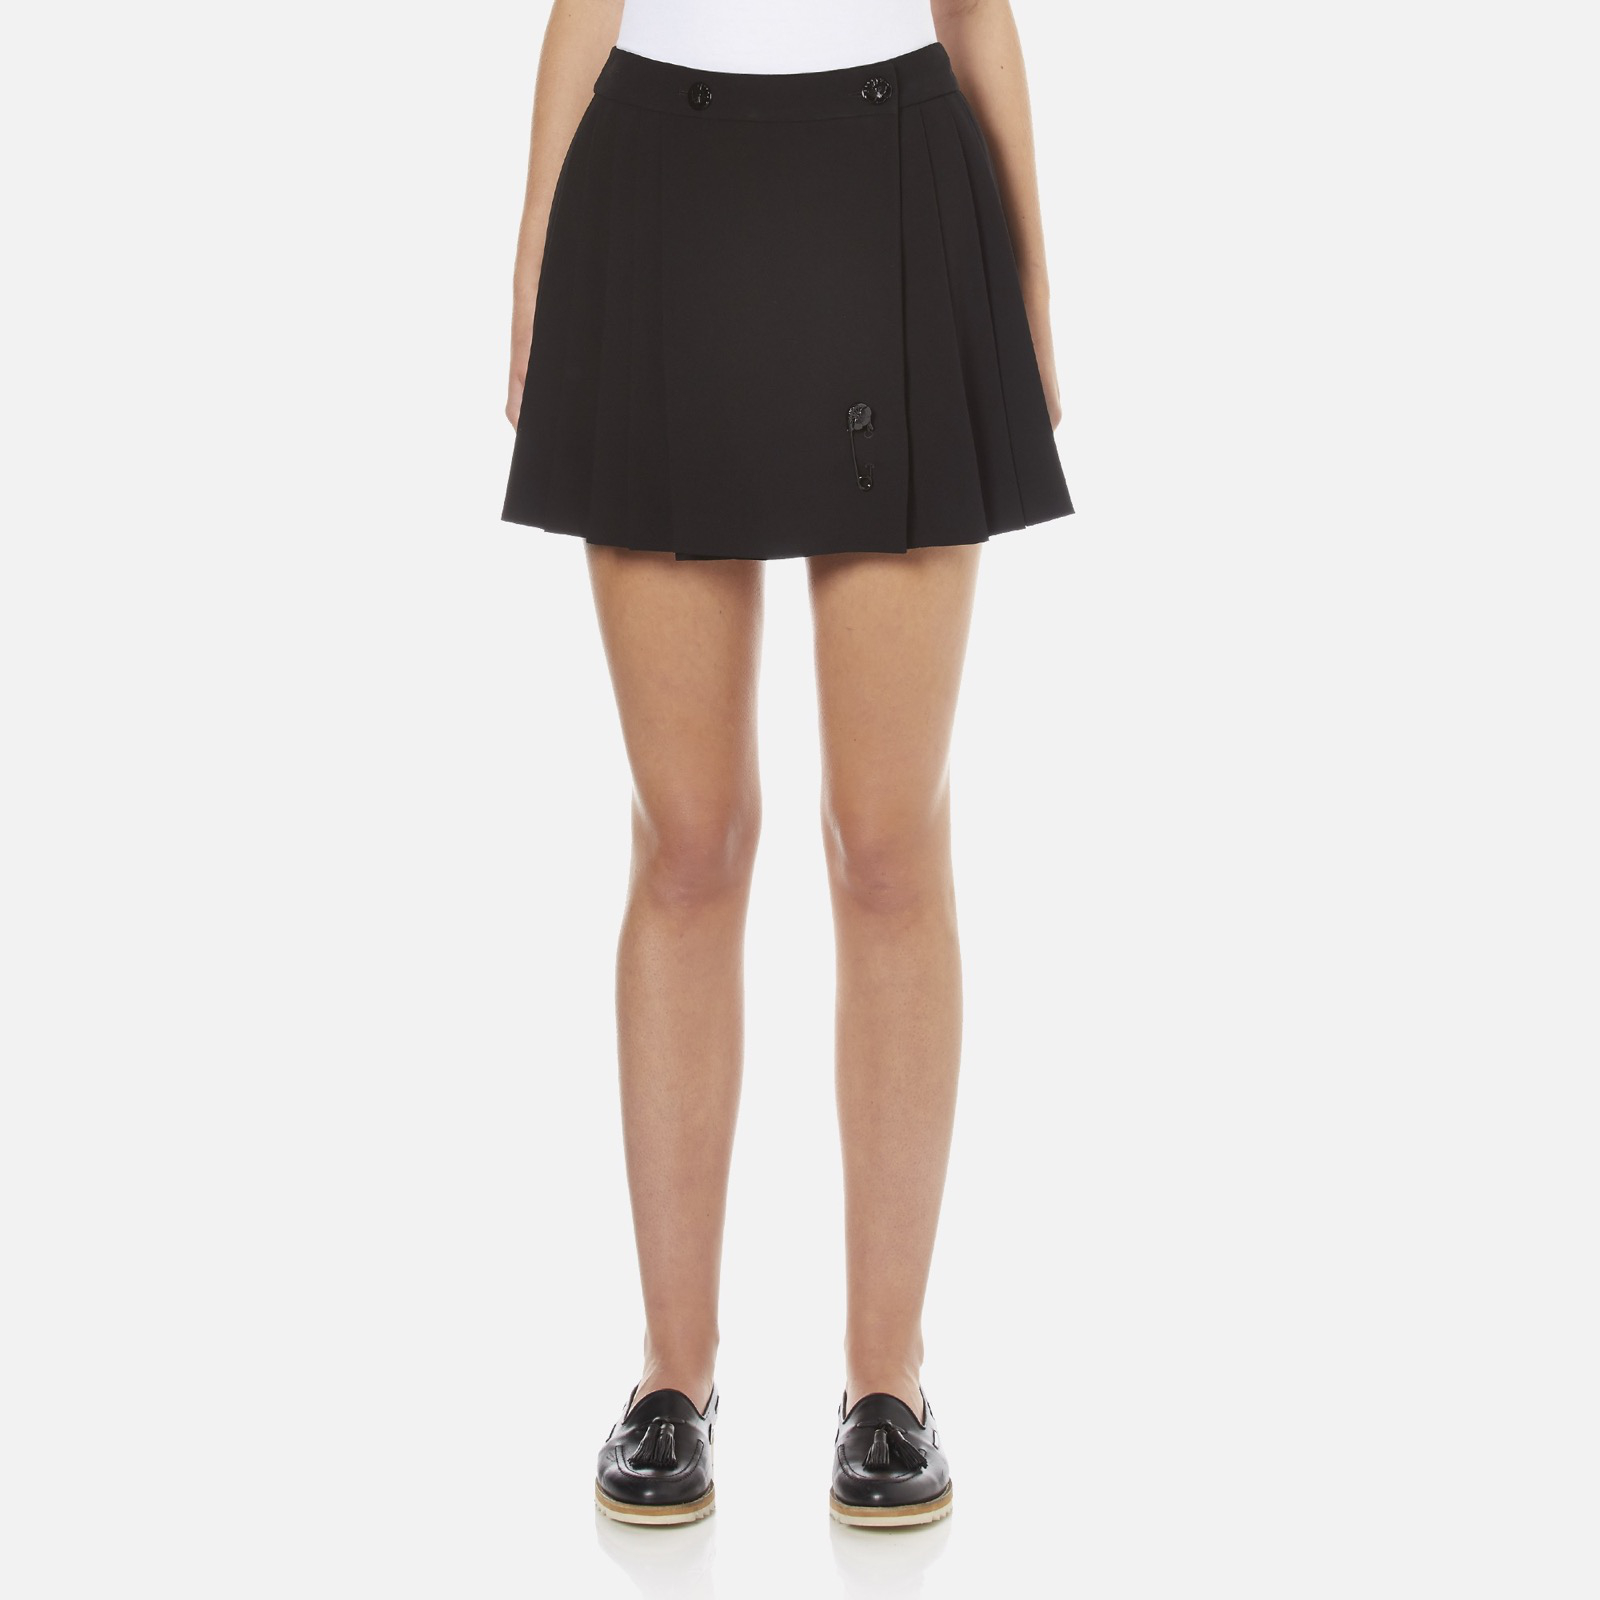 926cc919 KENZO Women's Pleated Skirt - Black